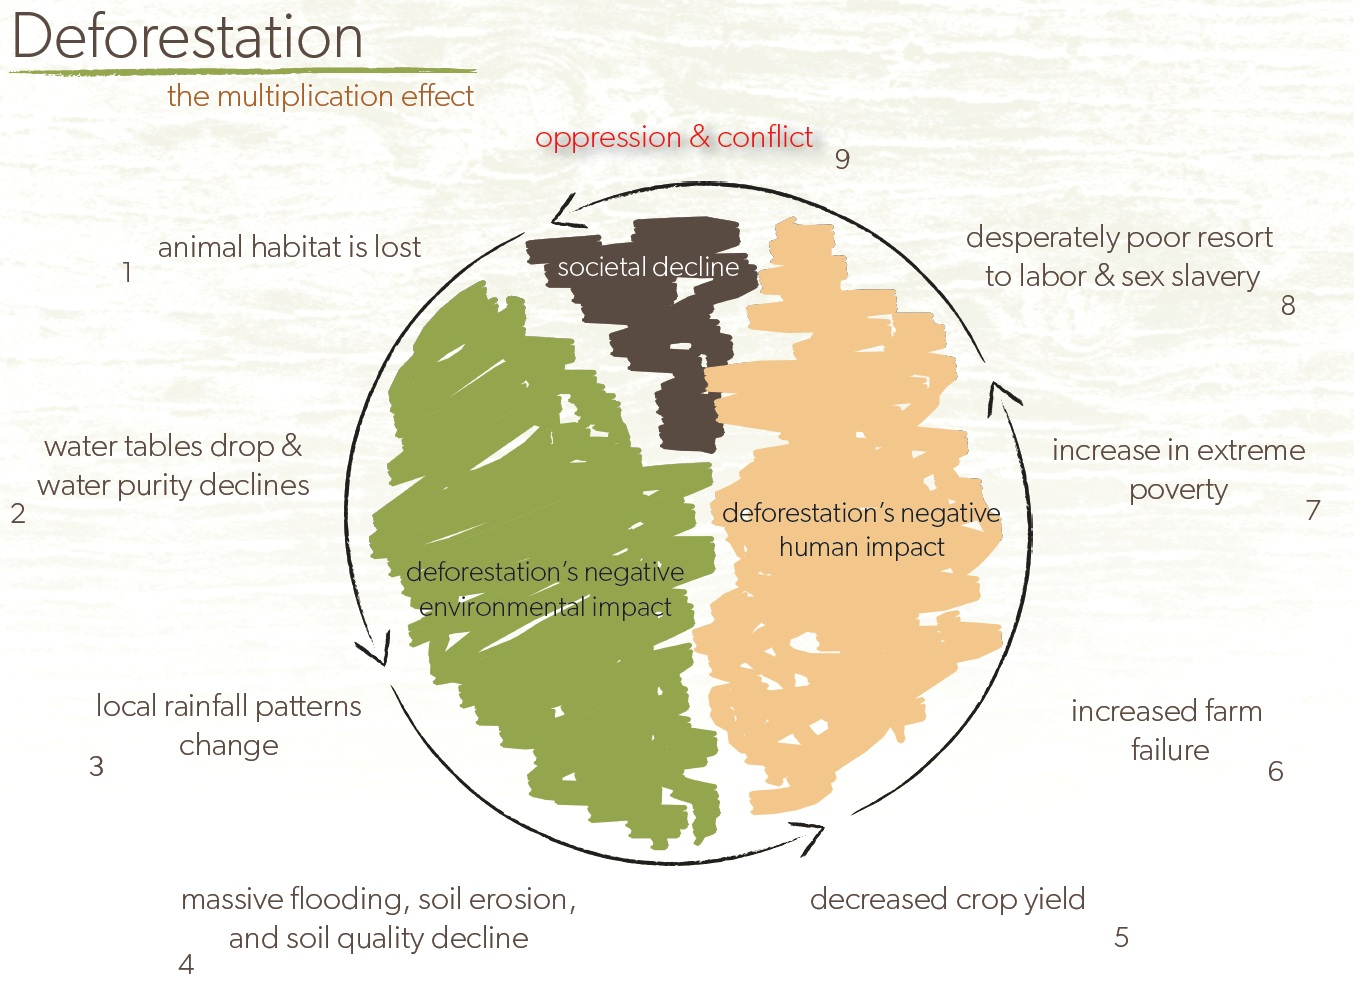 Deforestation - The multiplication effect